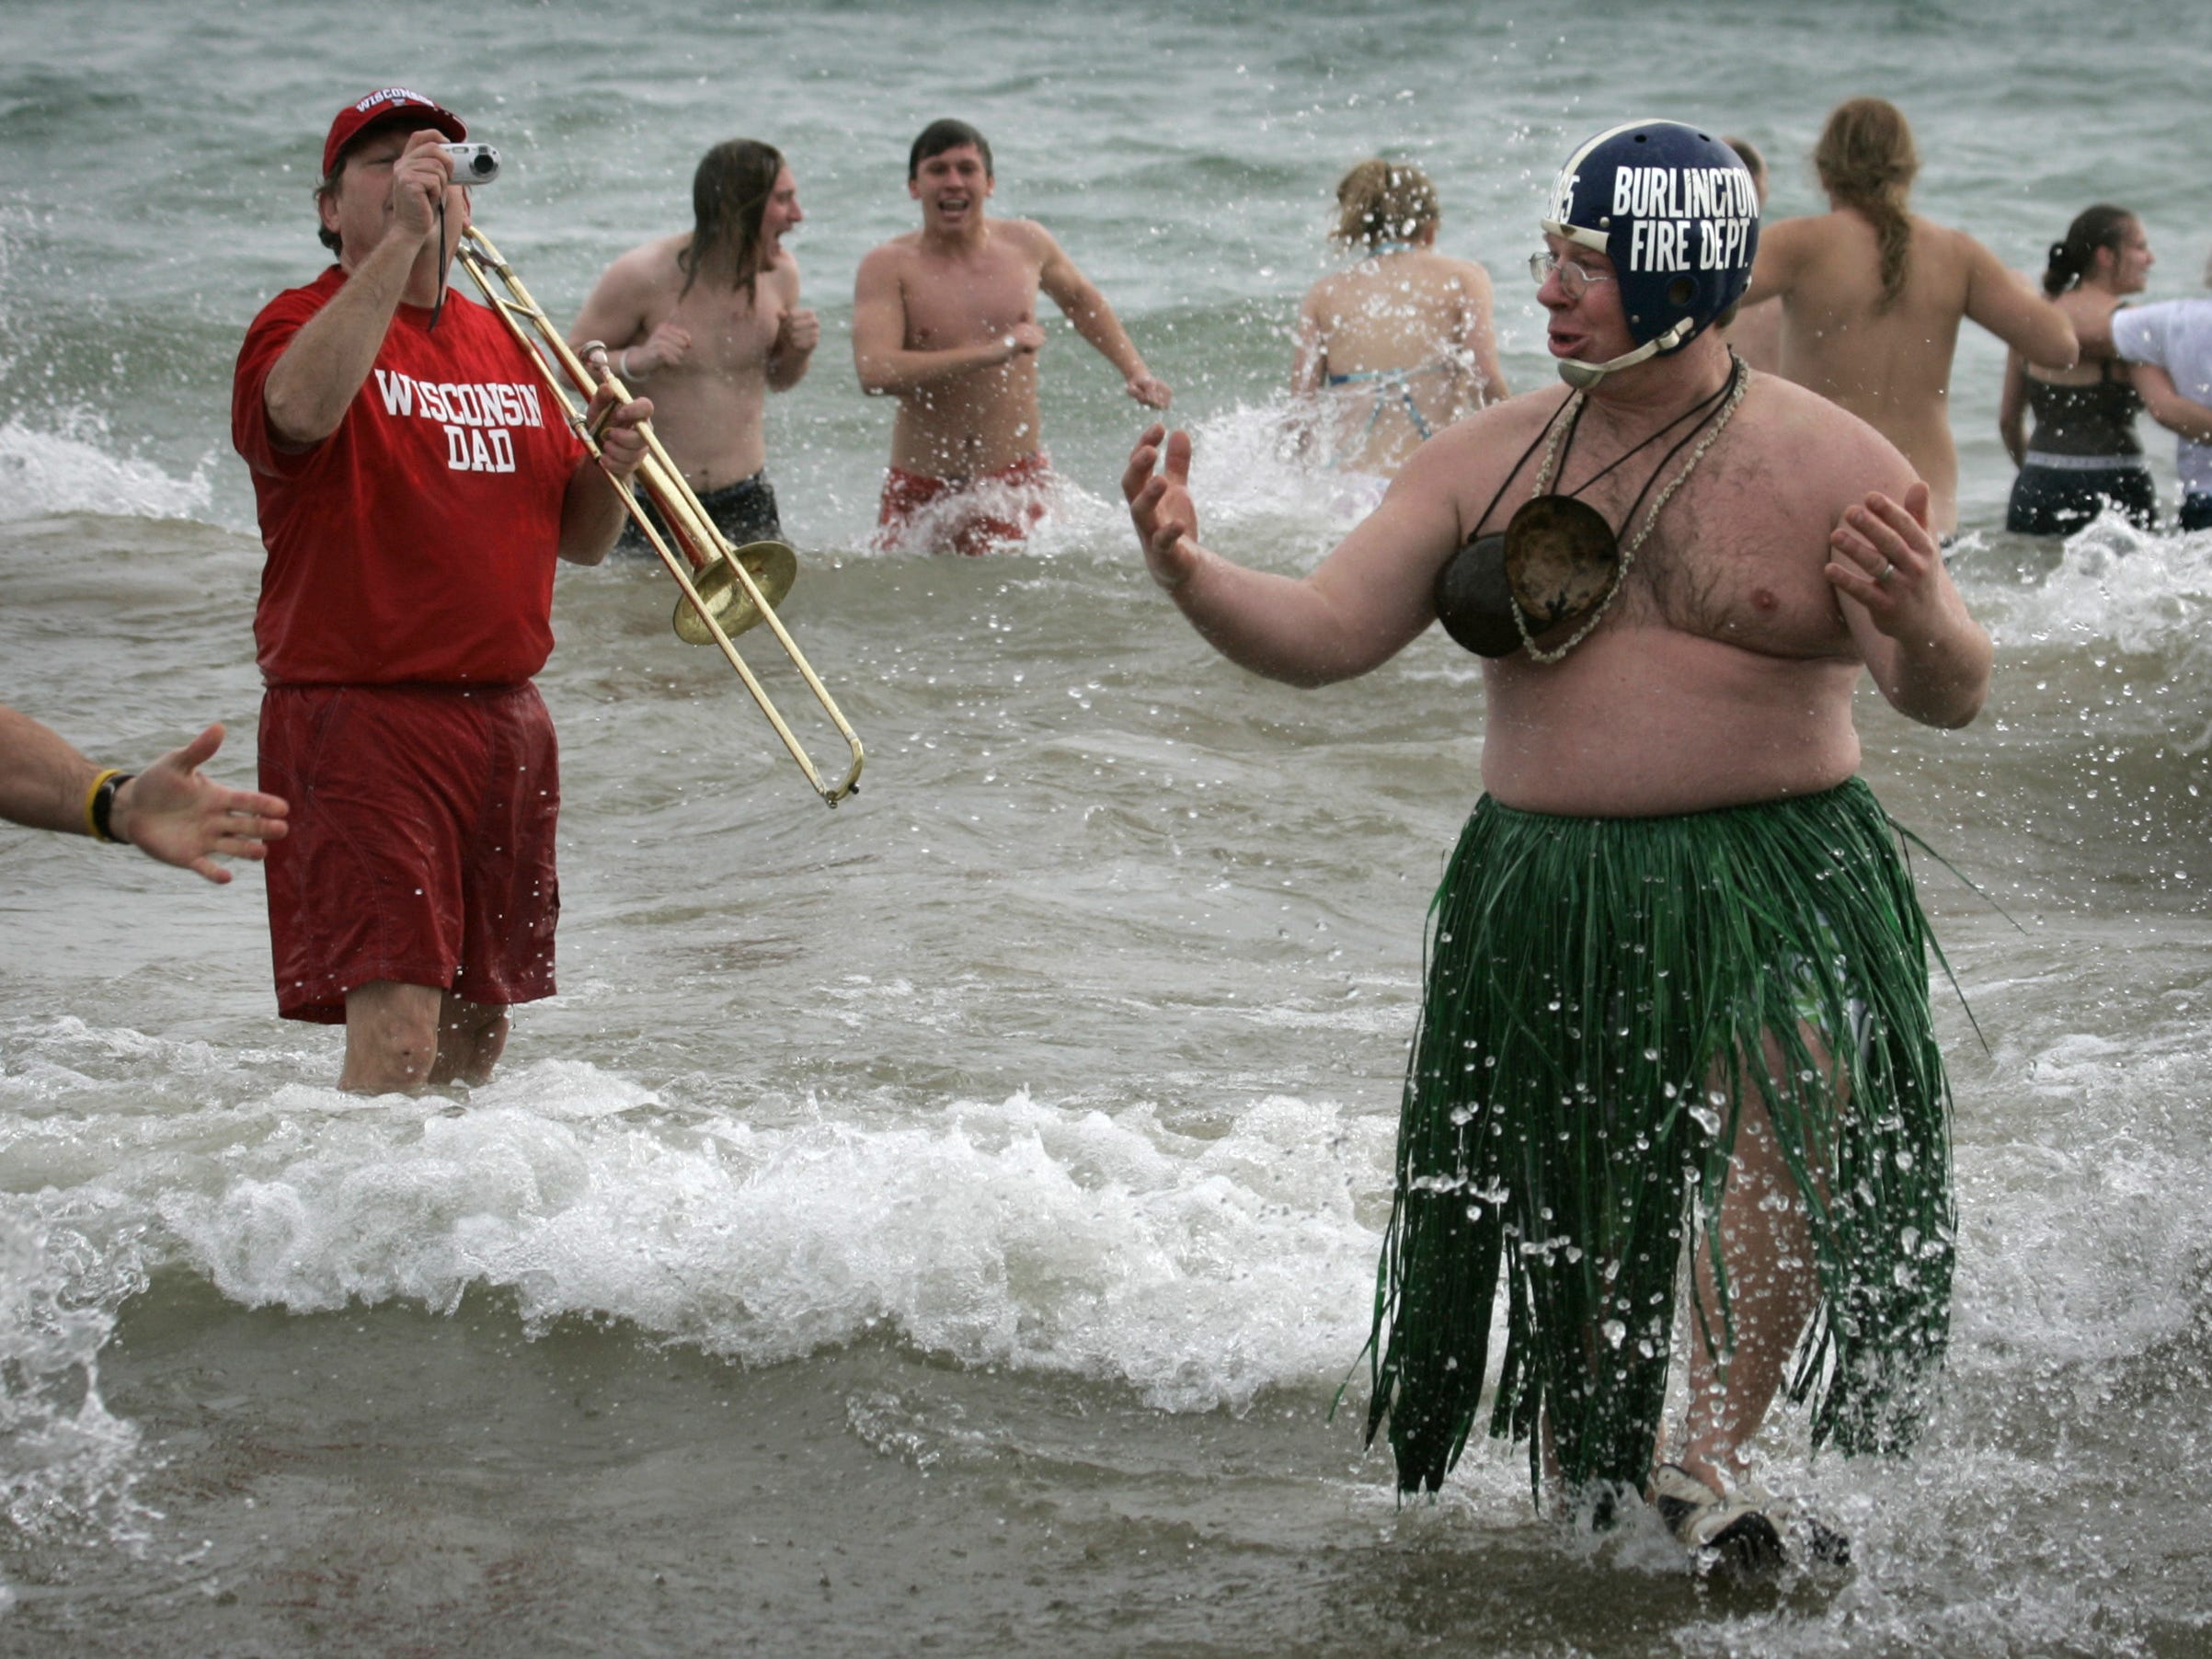 David Walesa of Burlington appears ready for a luau as he joined hundreds of other adventurous souls with a dive into the icy waters of Lake Michigan during the annual Polar Bear Plunge at Bradford Beach on New Year's Day in 2006.